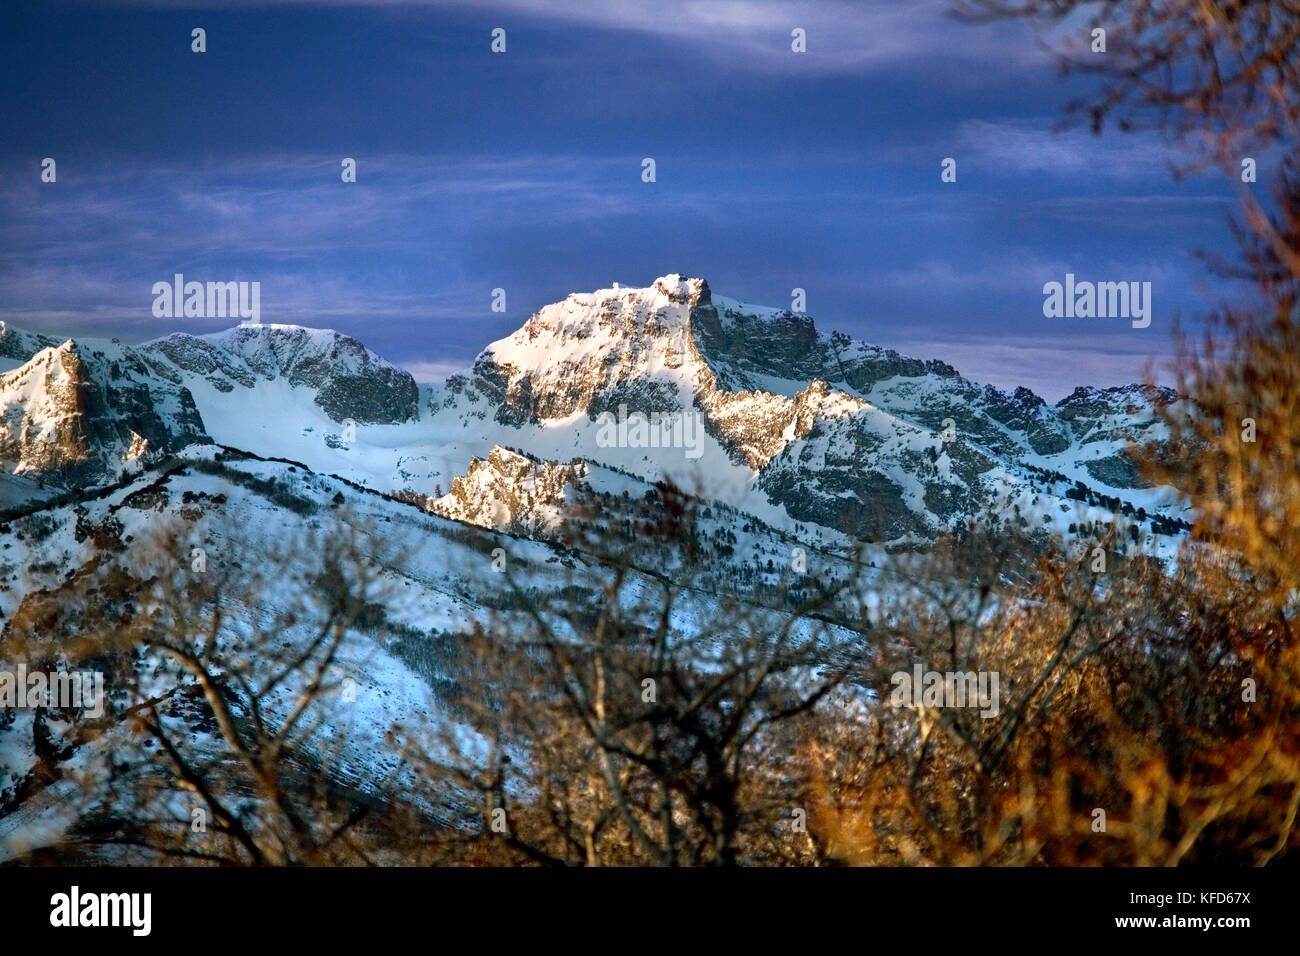 USA, Nevada, an early morning view of the Ruby Mountains in the Great Basin, Elko County, Lamoille Canyon - Stock Image